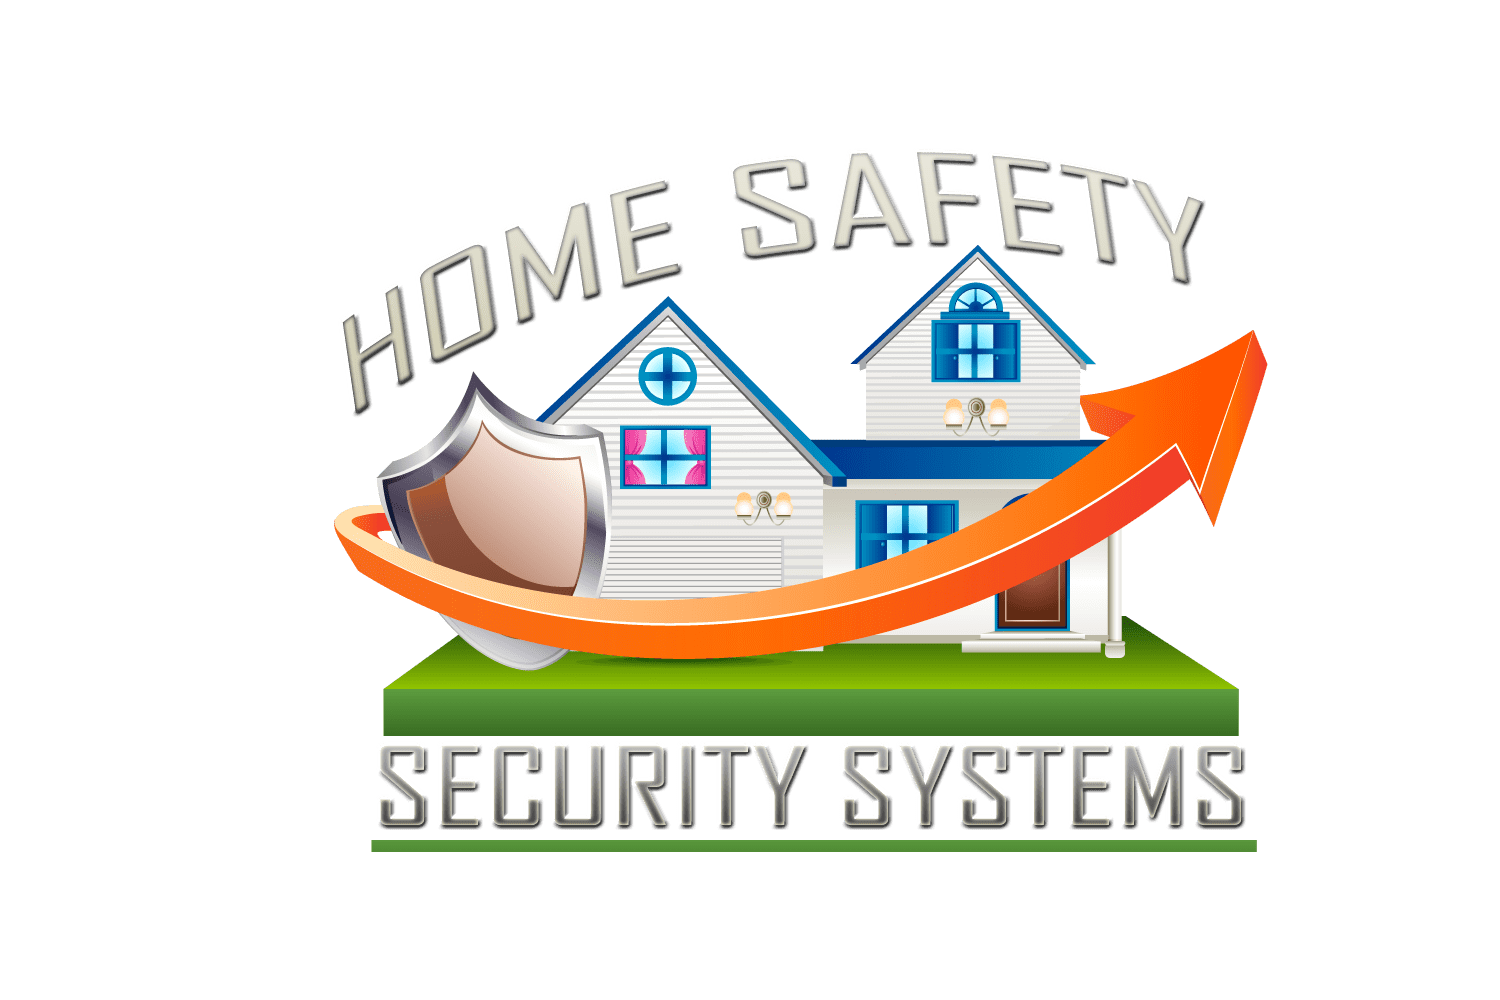 Safety Security Equipment